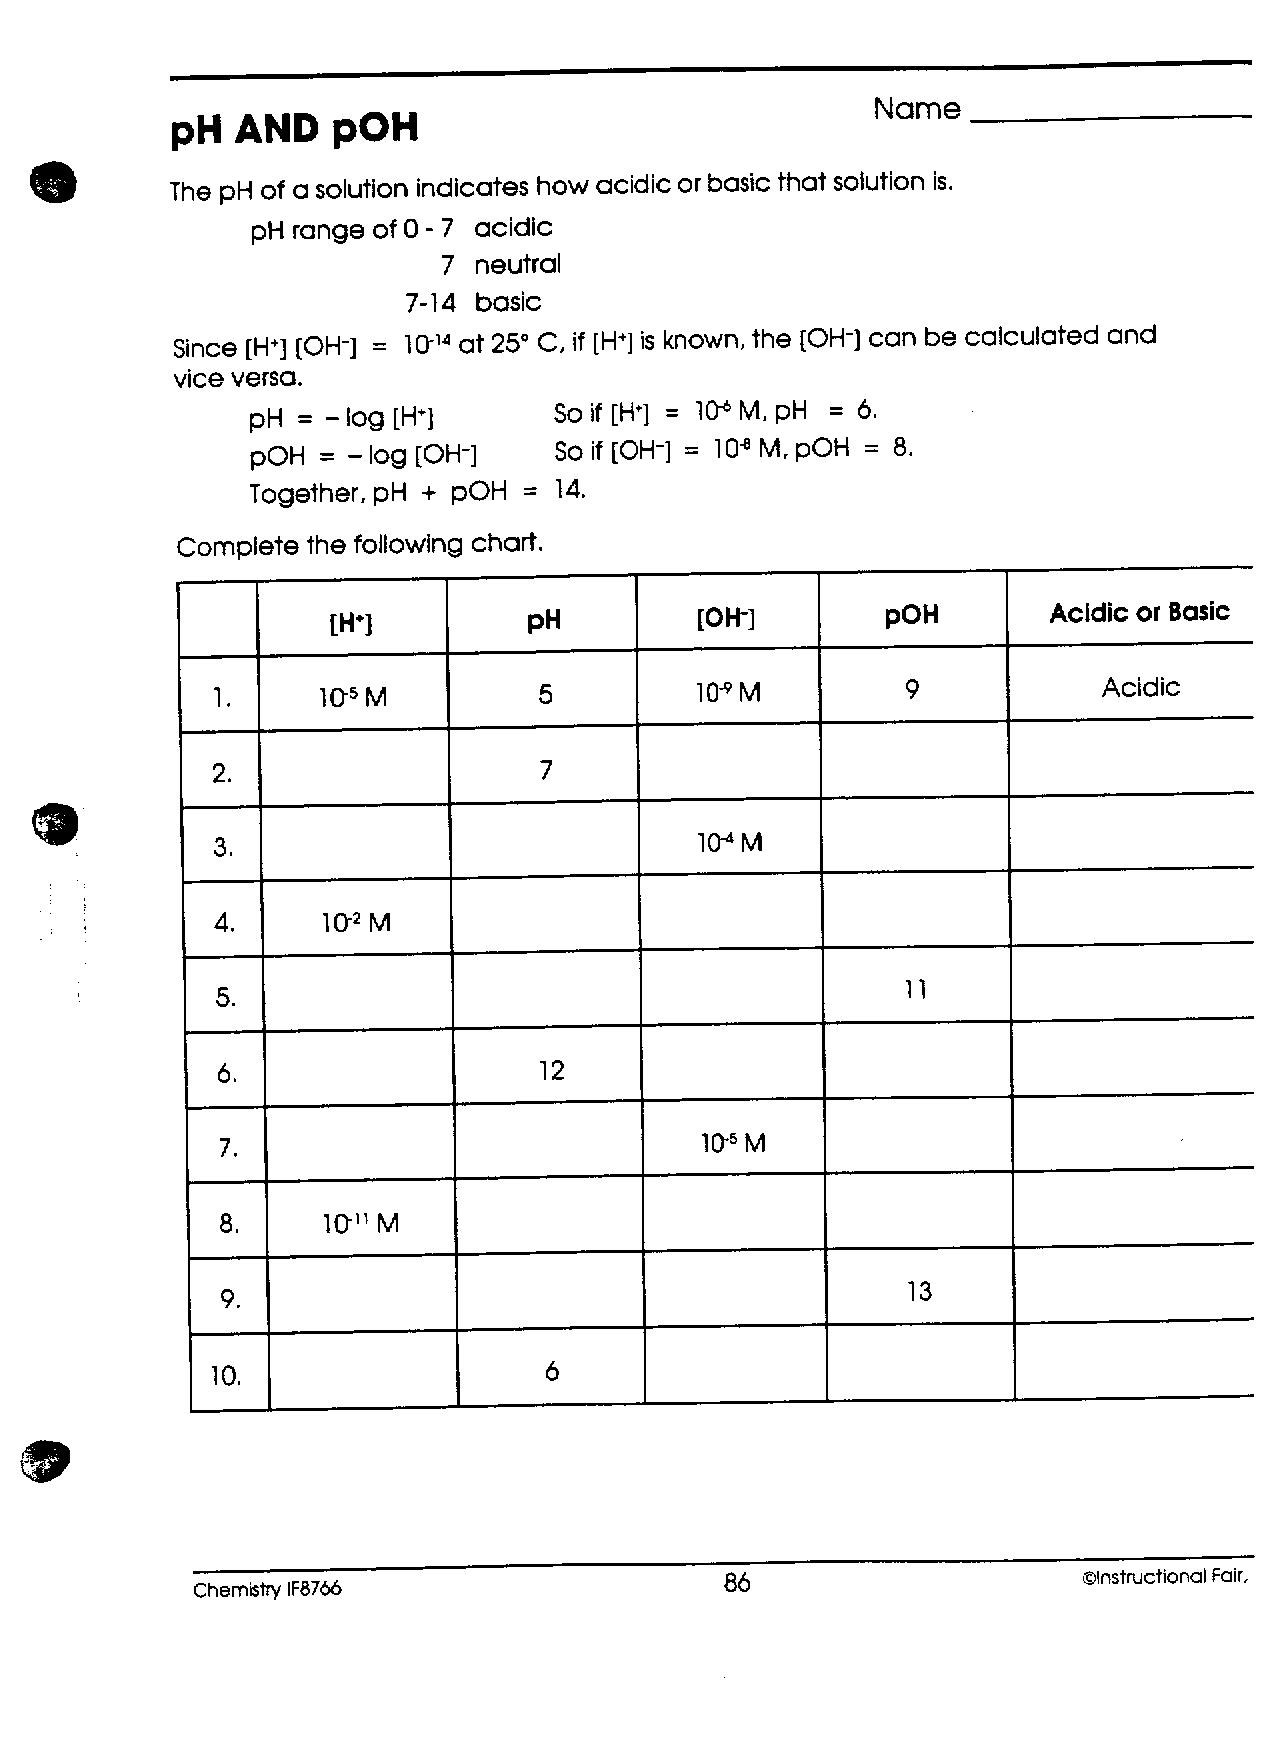 Chem IIB Mr Phelps Big Rapids HS – Ph and Poh Worksheet